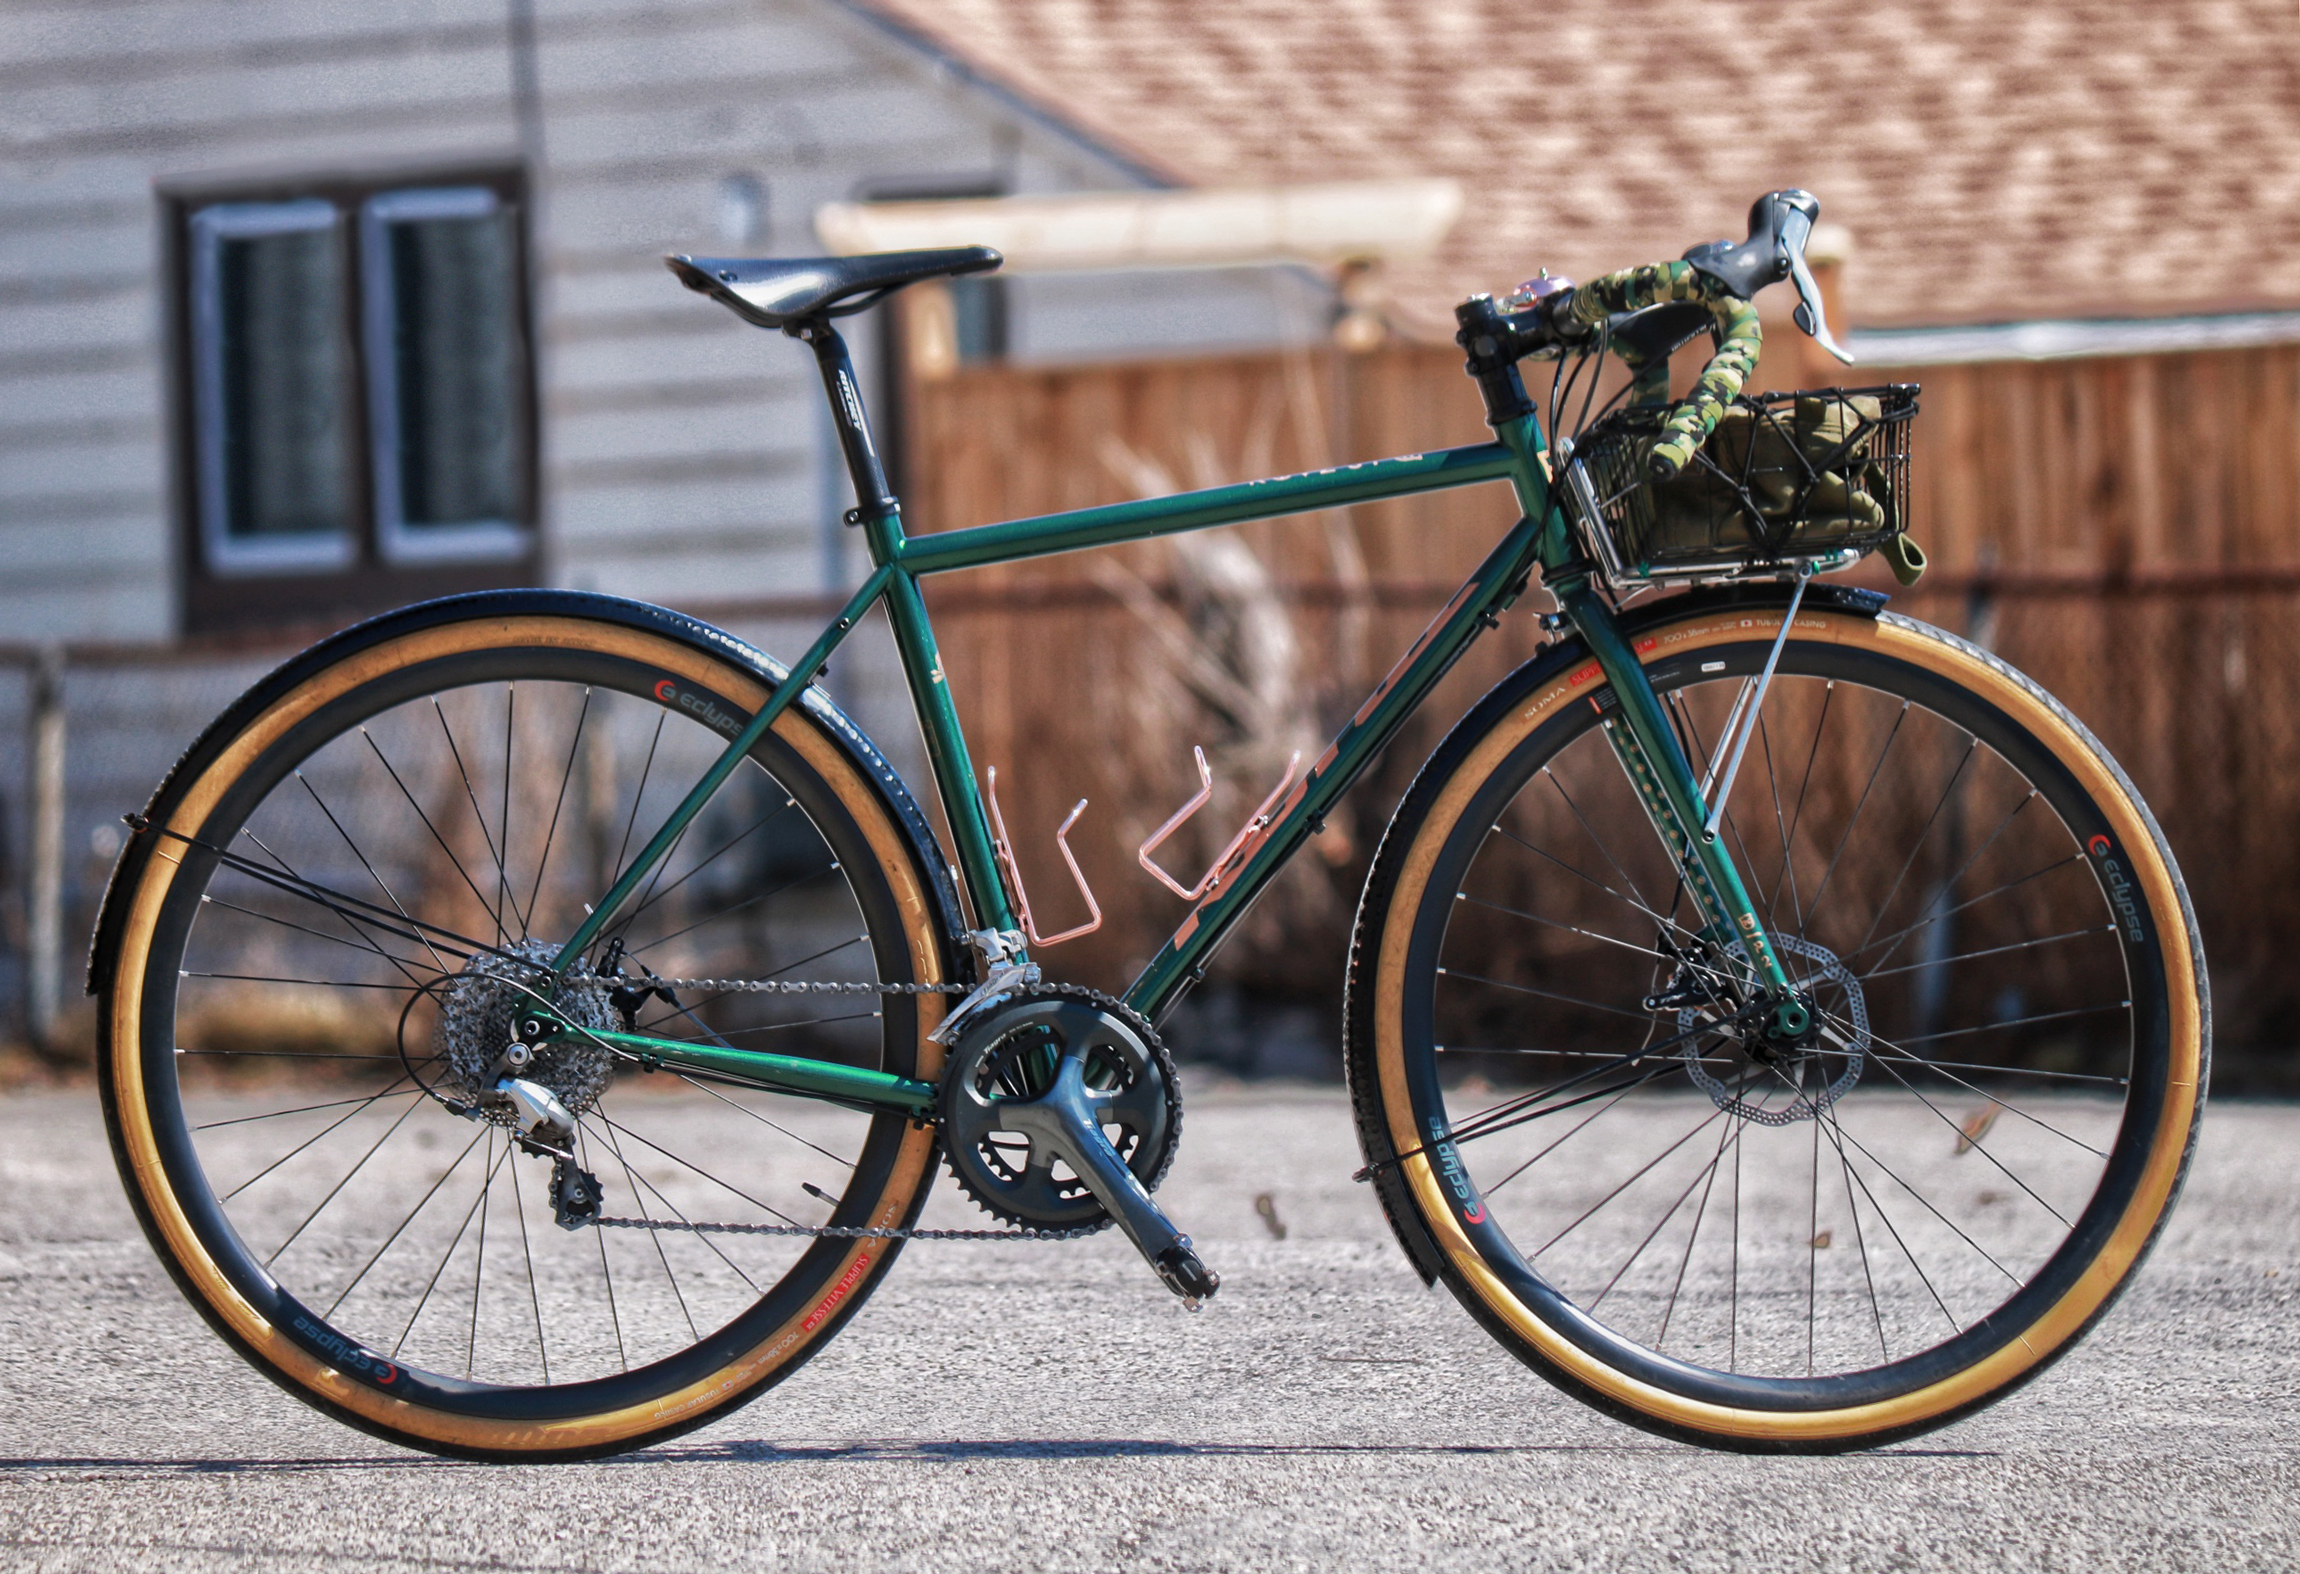 Kona Dream Builds: The Complete Commuter, David's Rove St